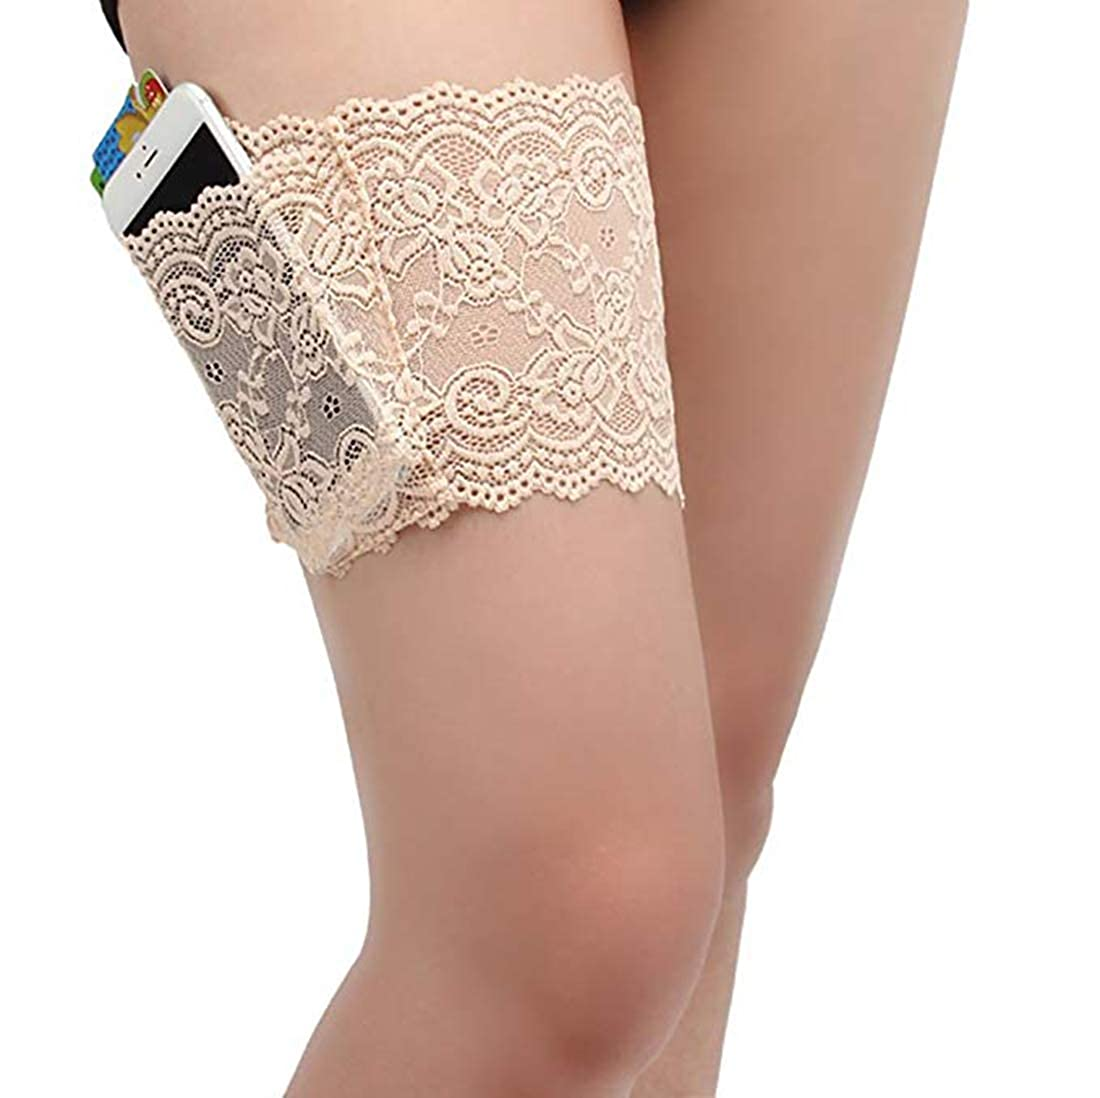 CAREOR Thicken Womens Lace Non-Slip Concealed Thigh Holster Thigh Garter with 4 Small Purse Phone Security Pockets